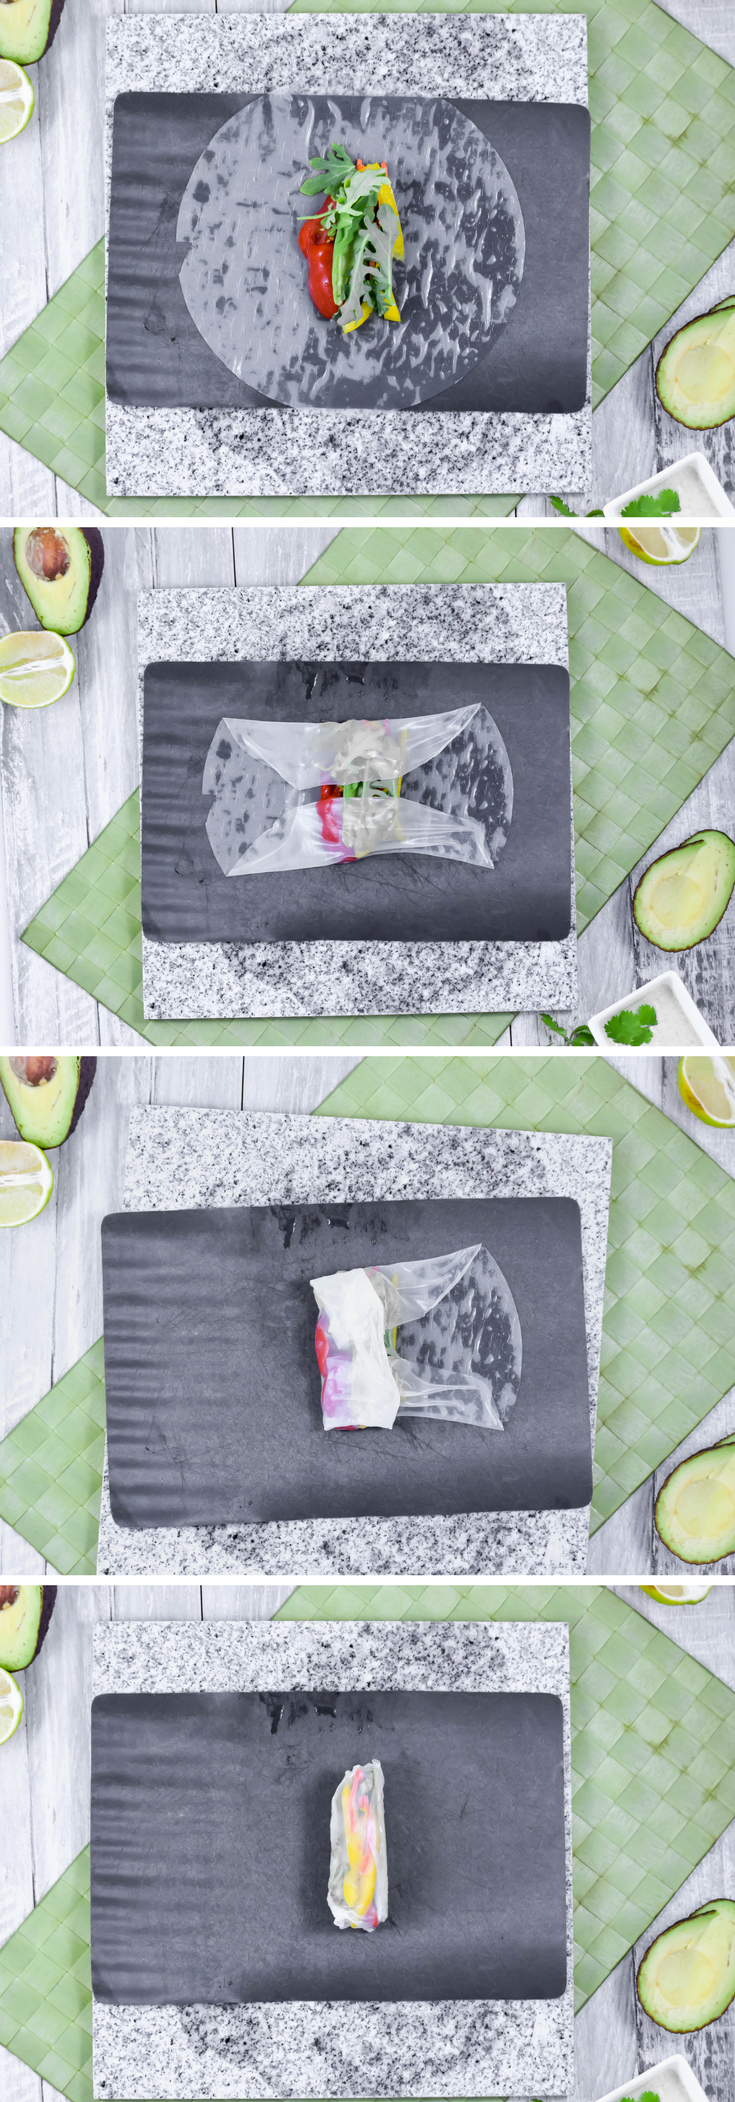 Step by Step Guide to Rolling Fresh Spring Rolls by Emily Kyle Nutrition